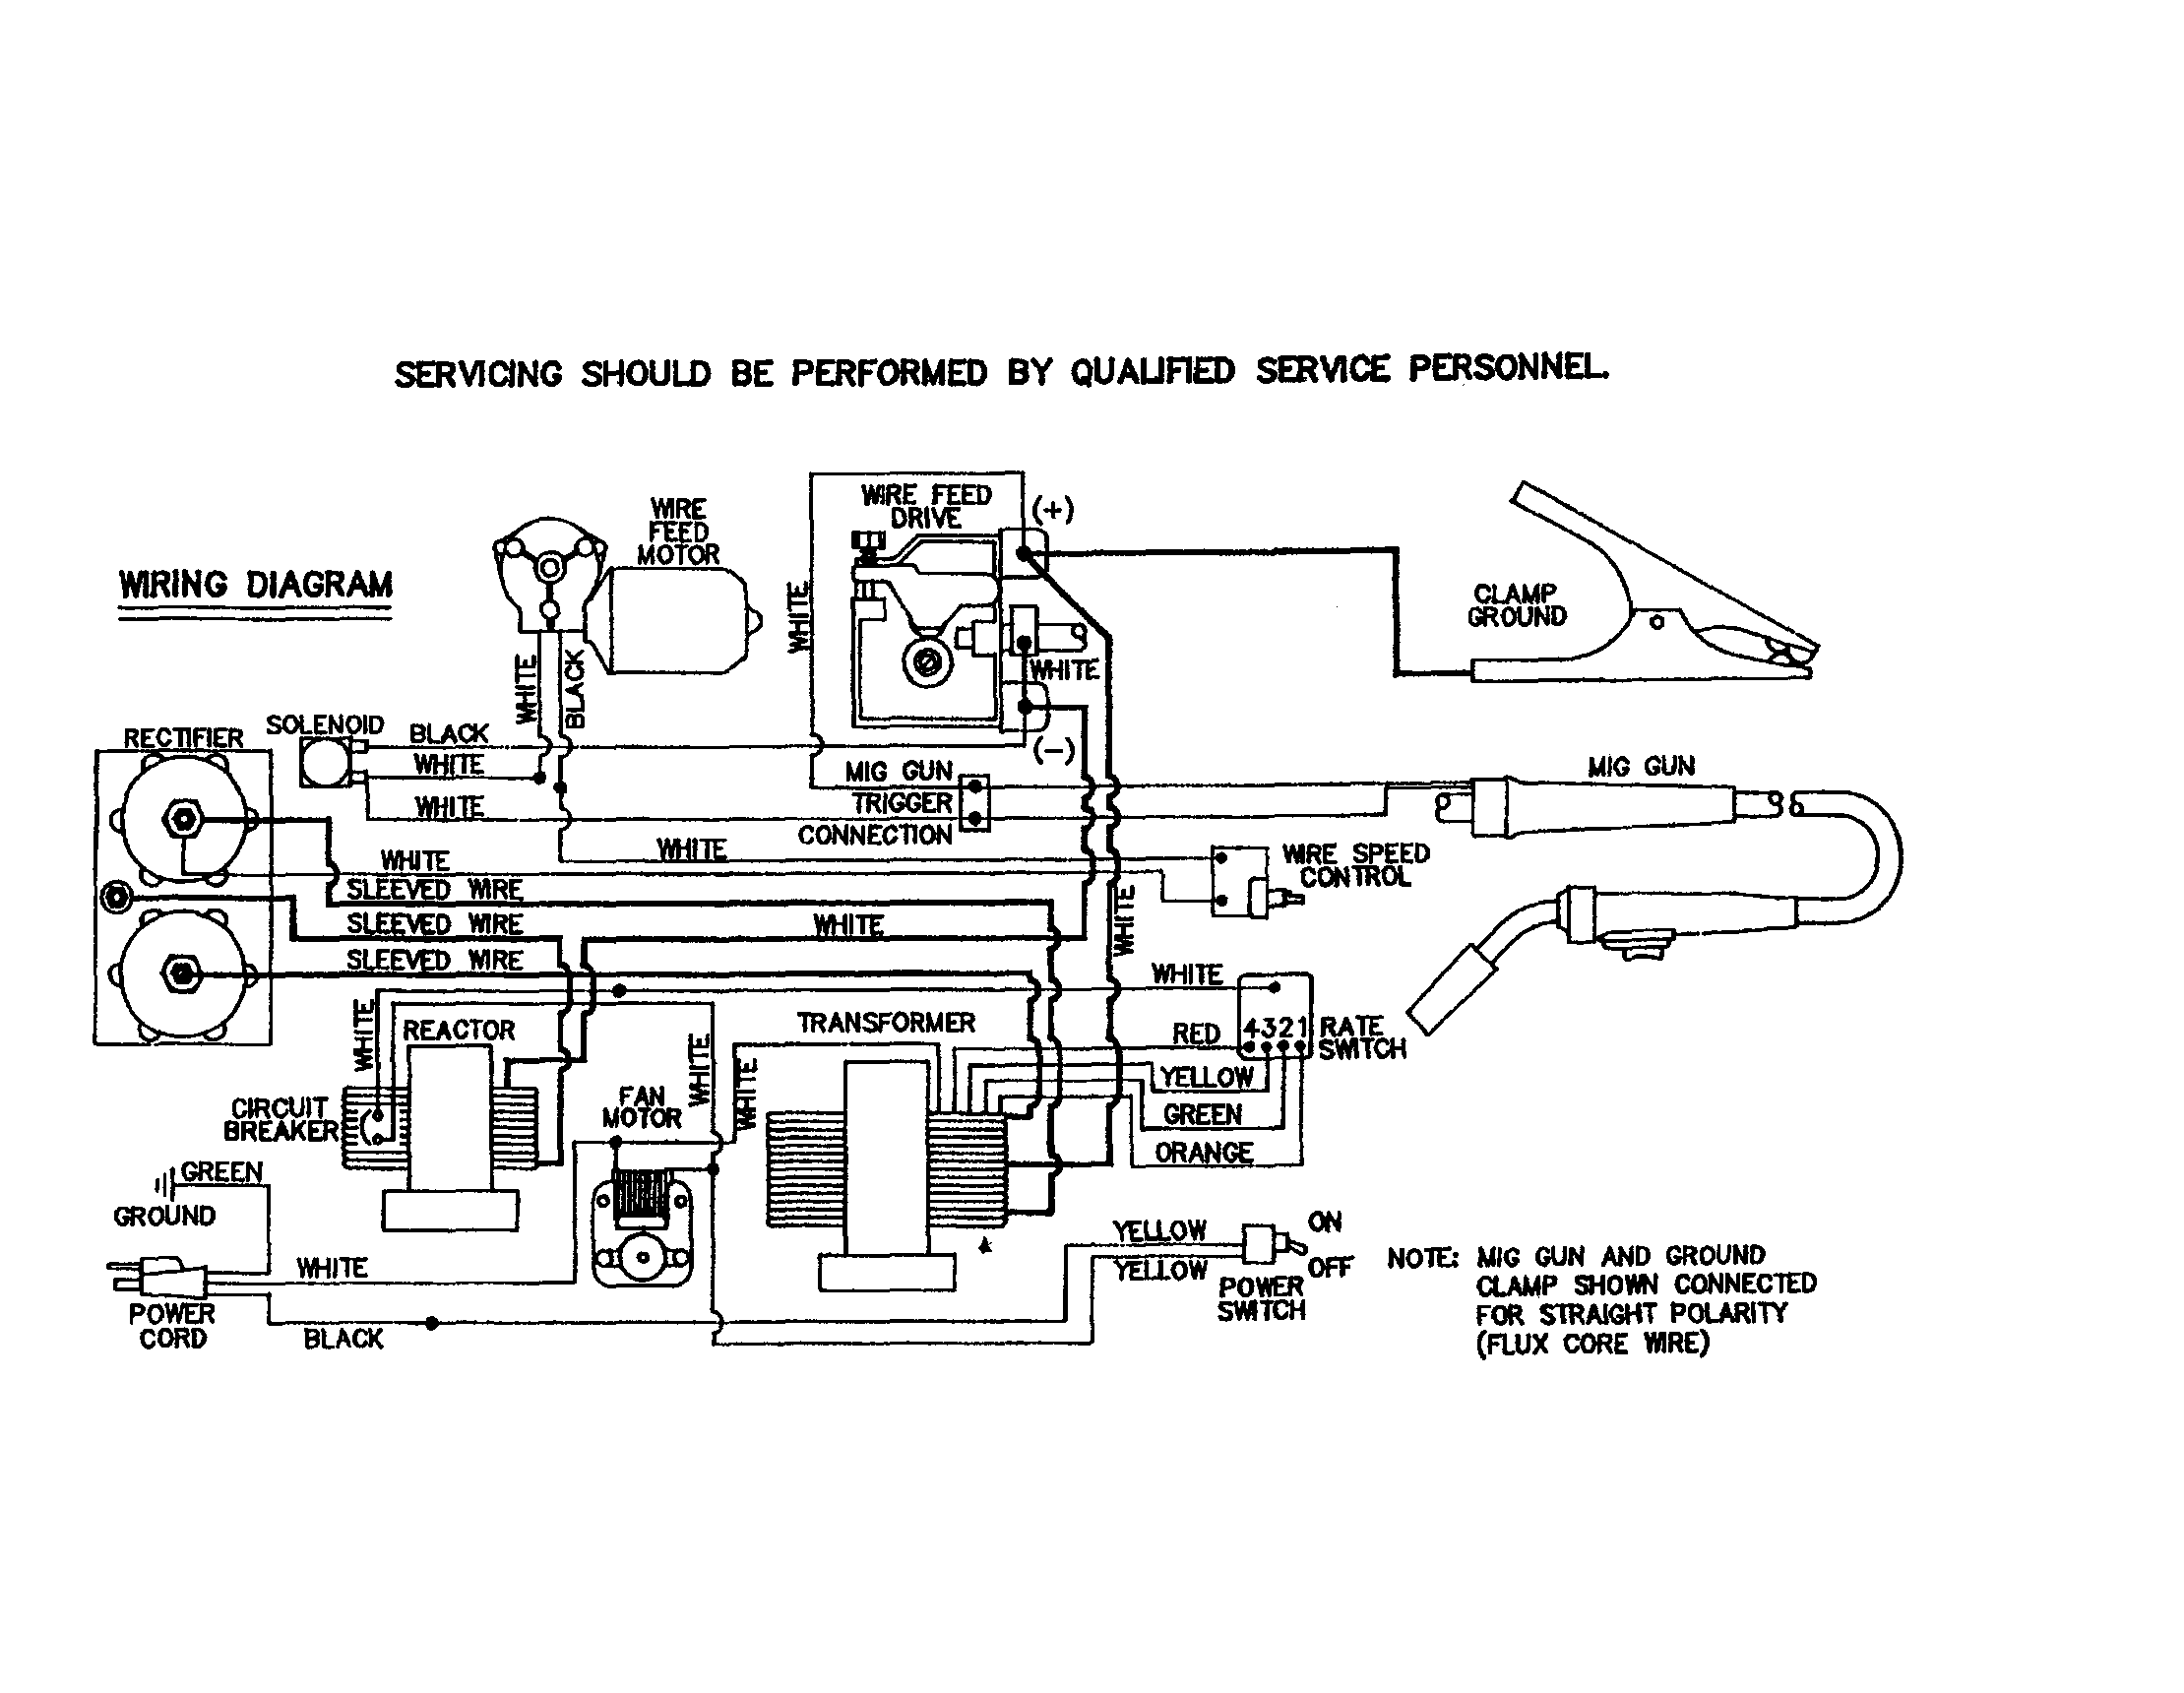 man welder diagram [ 2219 x 1720 Pixel ]